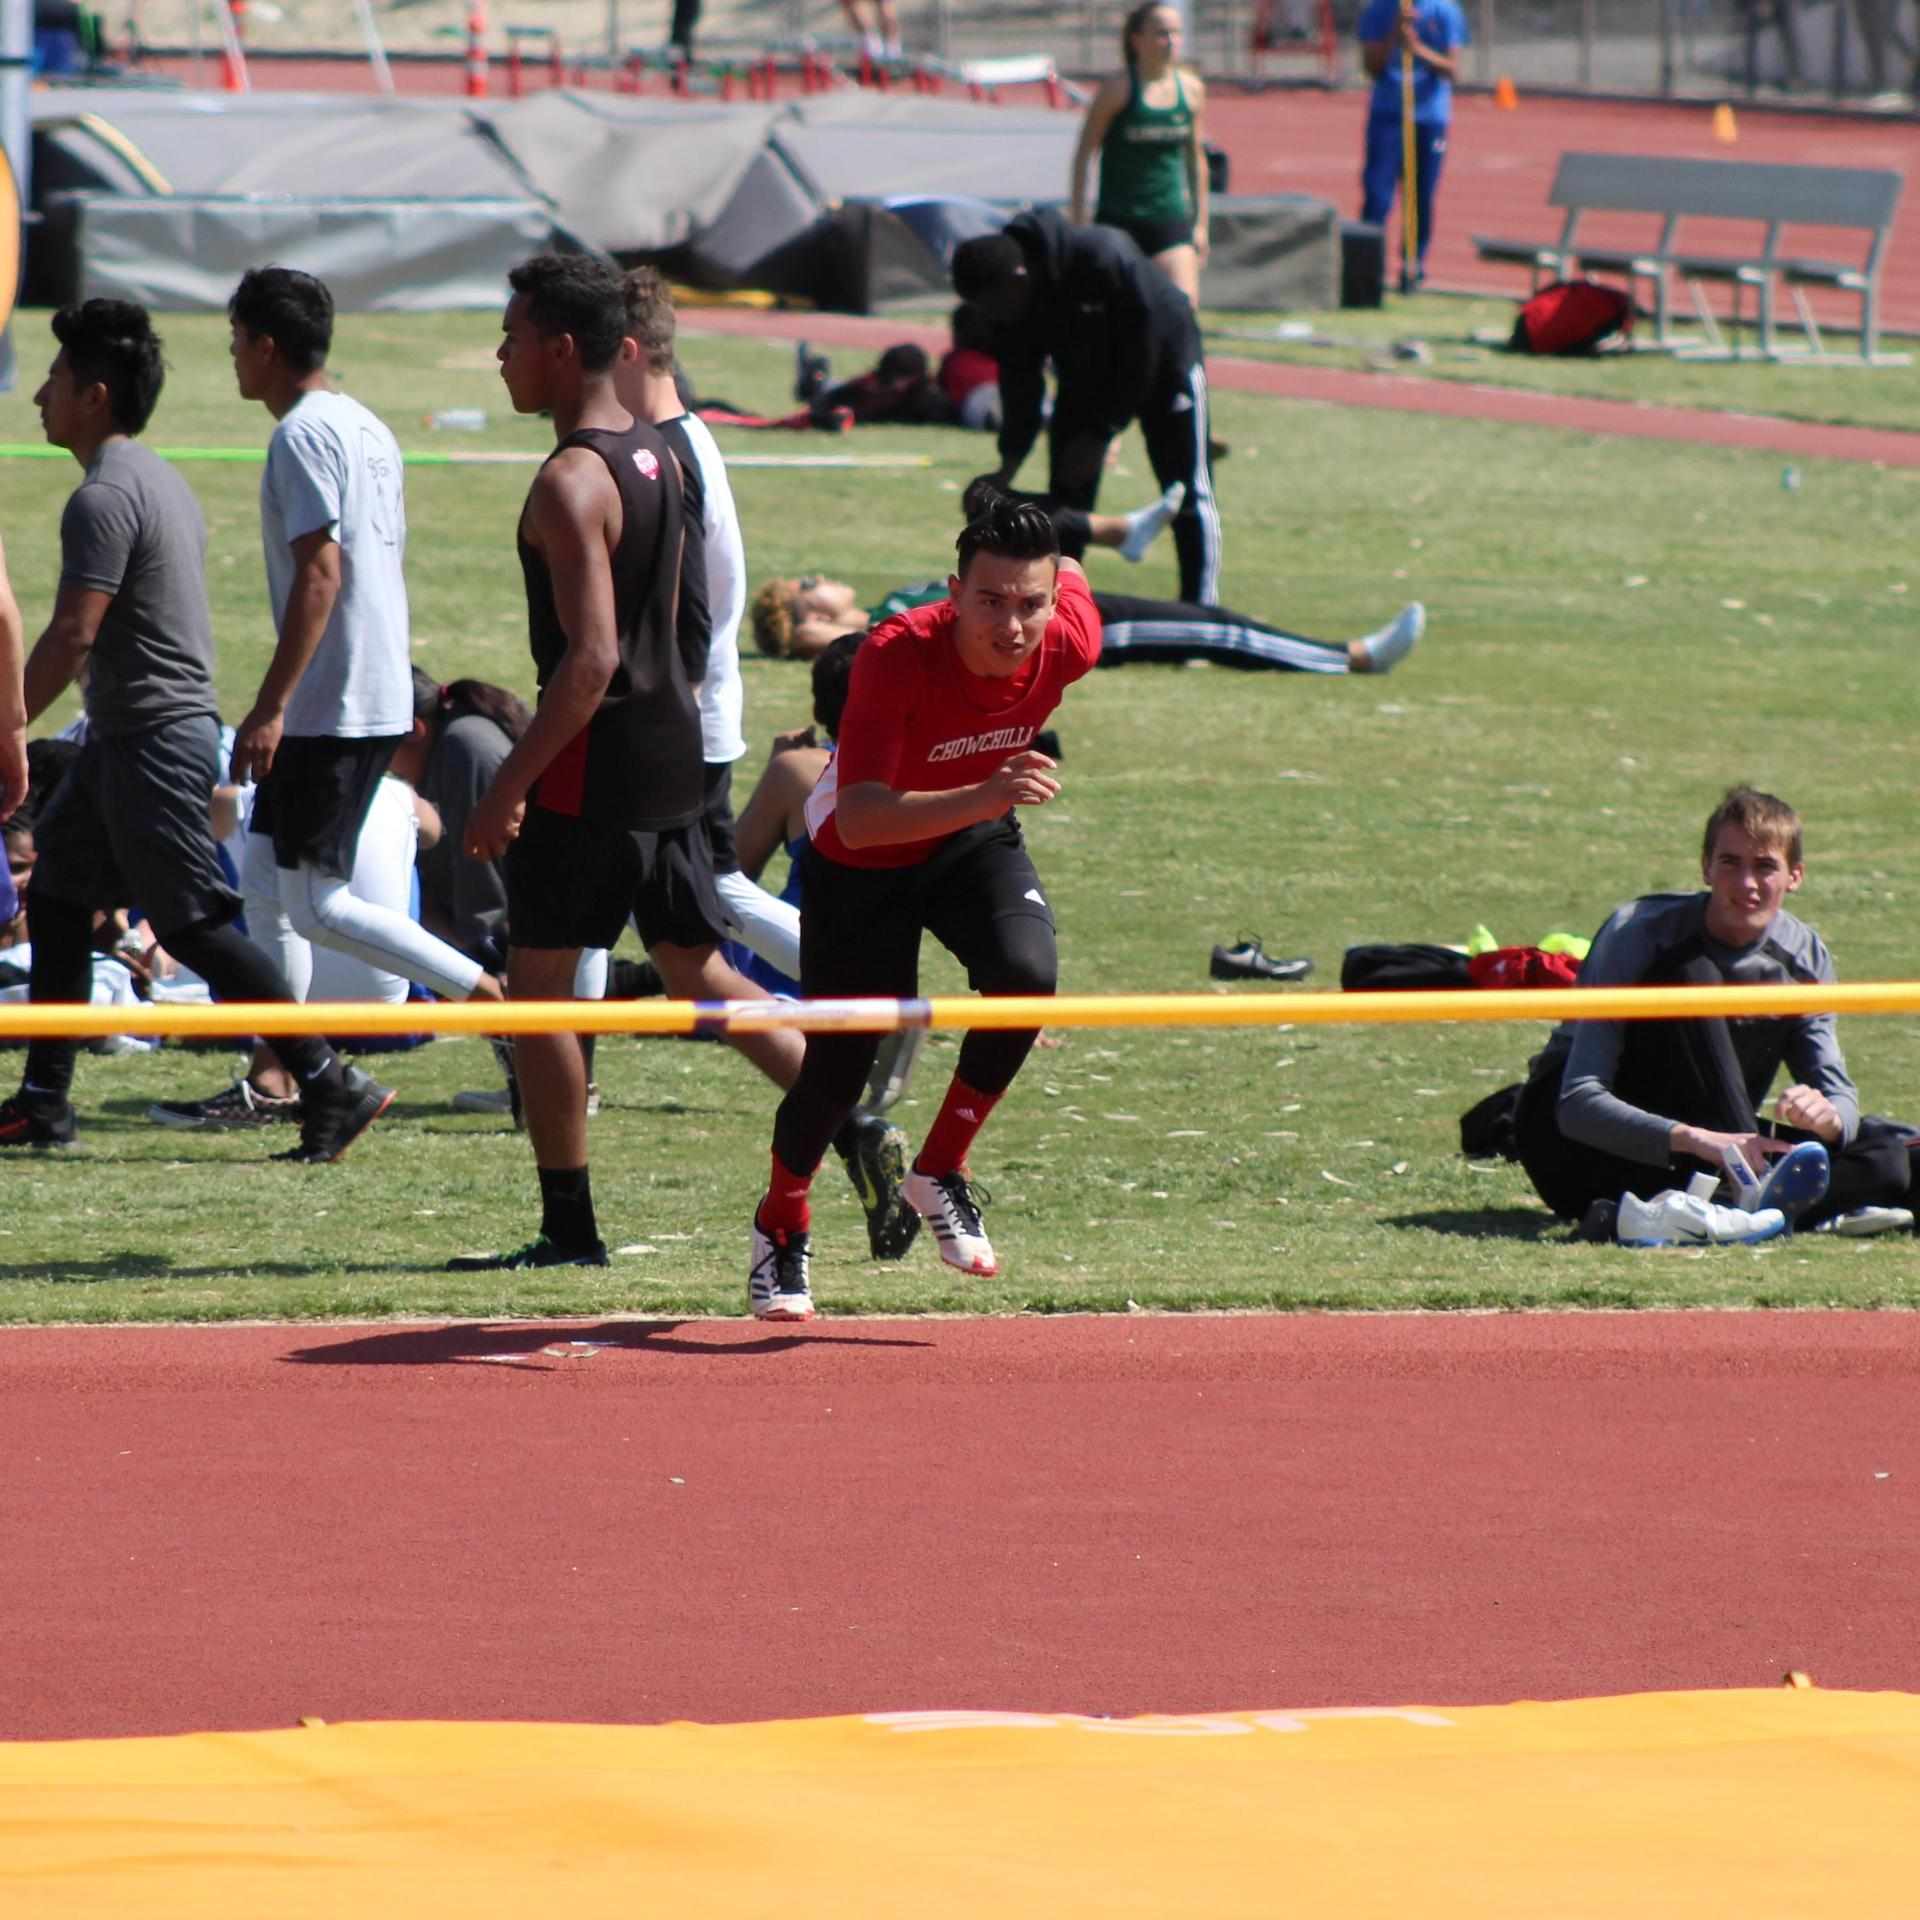 Track and field athletes competing at Hanford